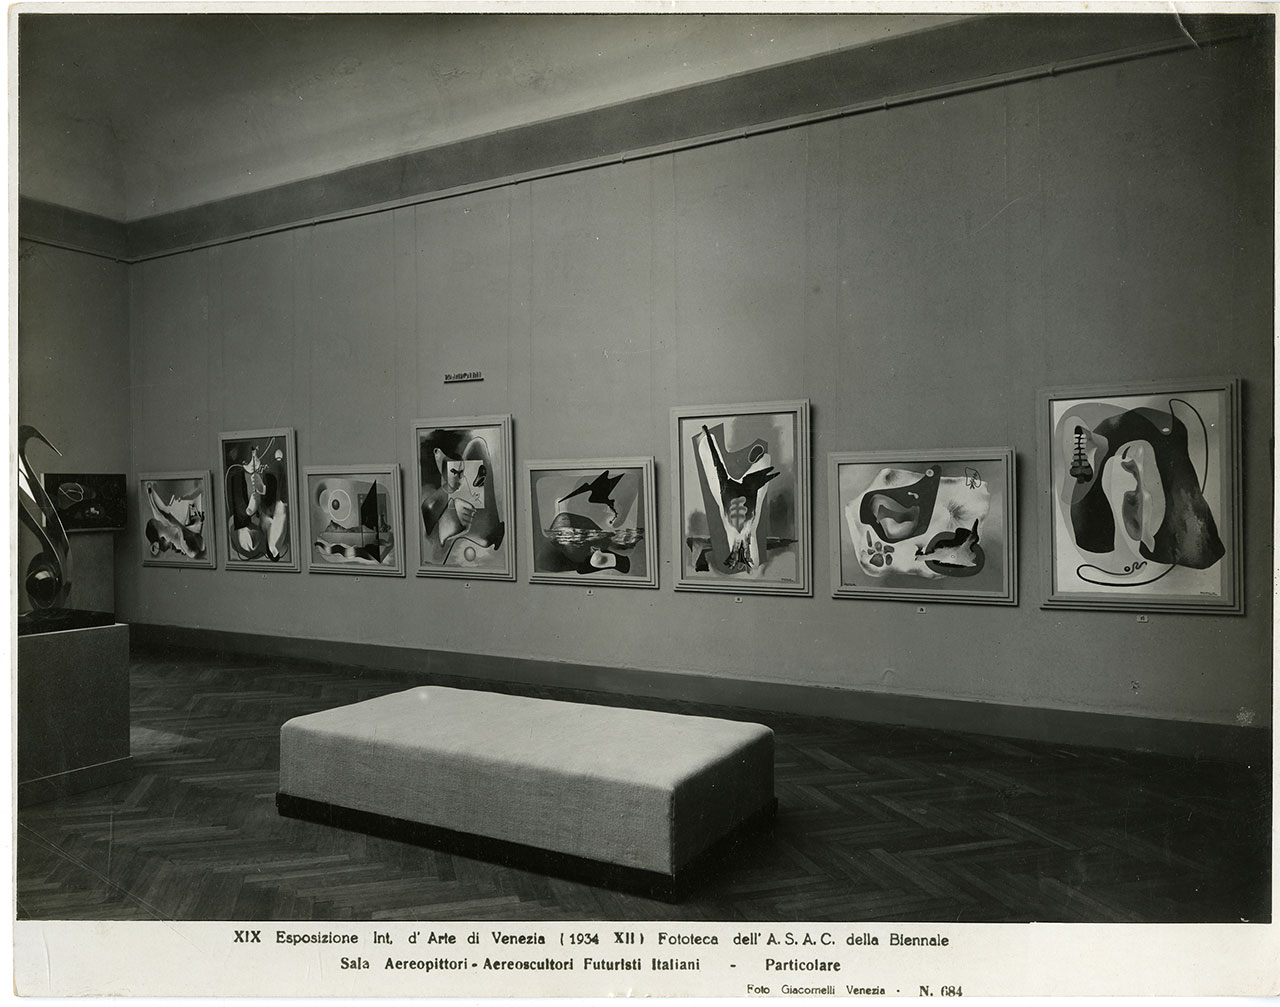 "Aeropittori room of XVIII Biennale, Venezia, 1934 Among the exhibited works, I funerali del romanticismo: trasfigurazione estetica (1934) by Enrico Prampolini © The Venice Biennale, ASAC, Photo Library - ""Attualità e Allestimenti"" series - Particular Room. Aereopittori, Aereoscultori Futuristi Italiani, XIX. International Art Exhibition 1934. Photo Giacomelli."